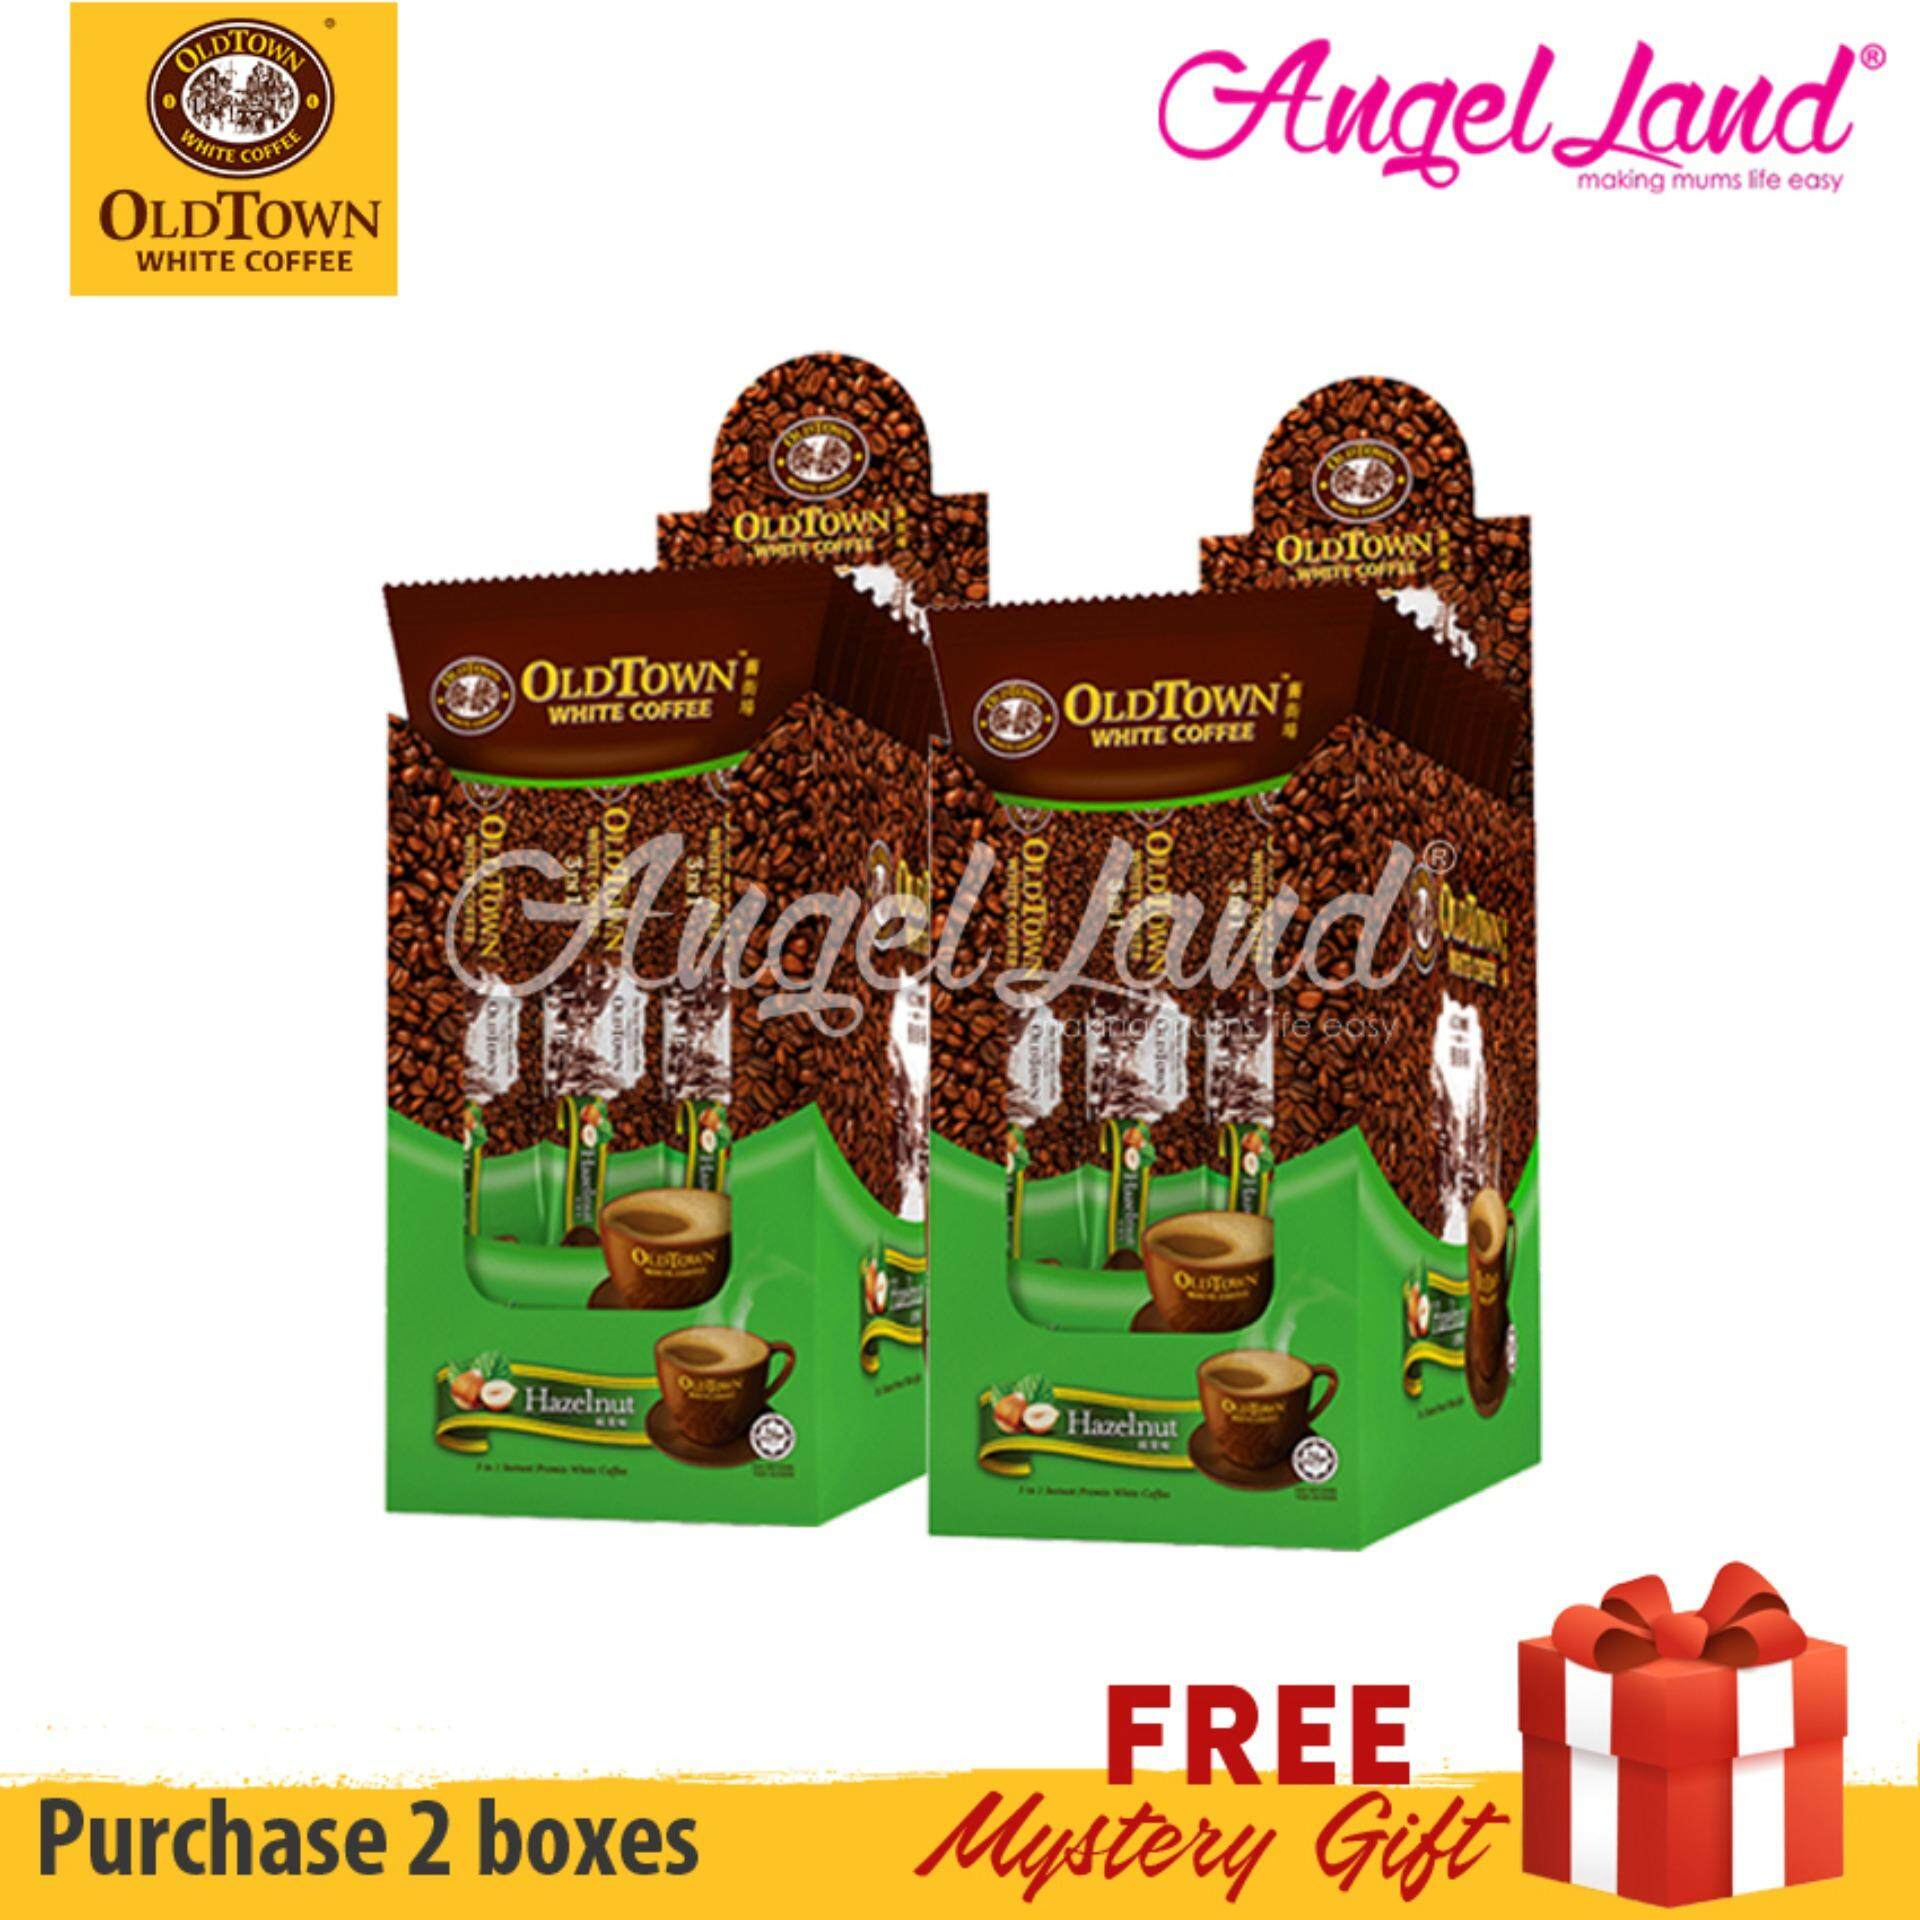 OLDTOWN White Coffee 3-in-1 Hazelnut Instant Premix White Coffee Convenient Box (3'S X 10)  (2 Boxes)[FOC Mystery Gift)